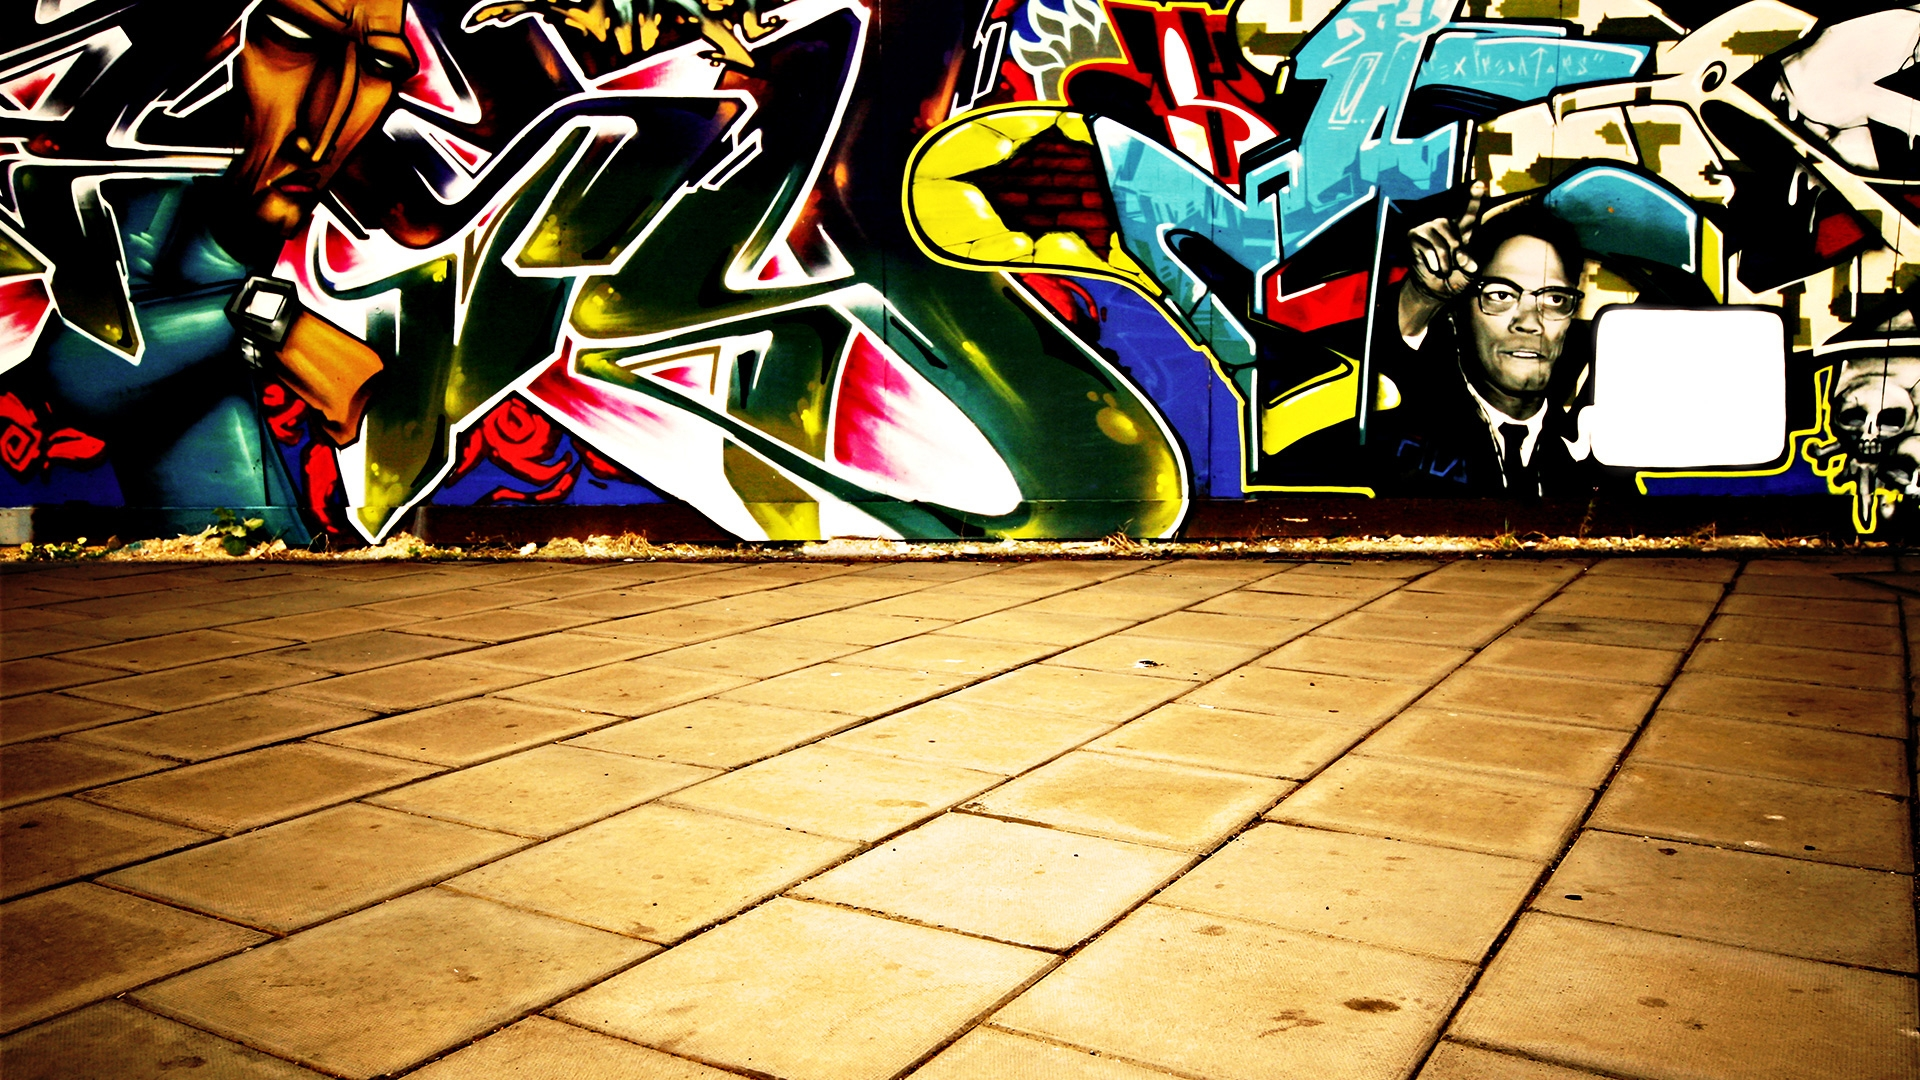 Preview wallpaper wall, graffiti, colorful, tiles 1920x1080